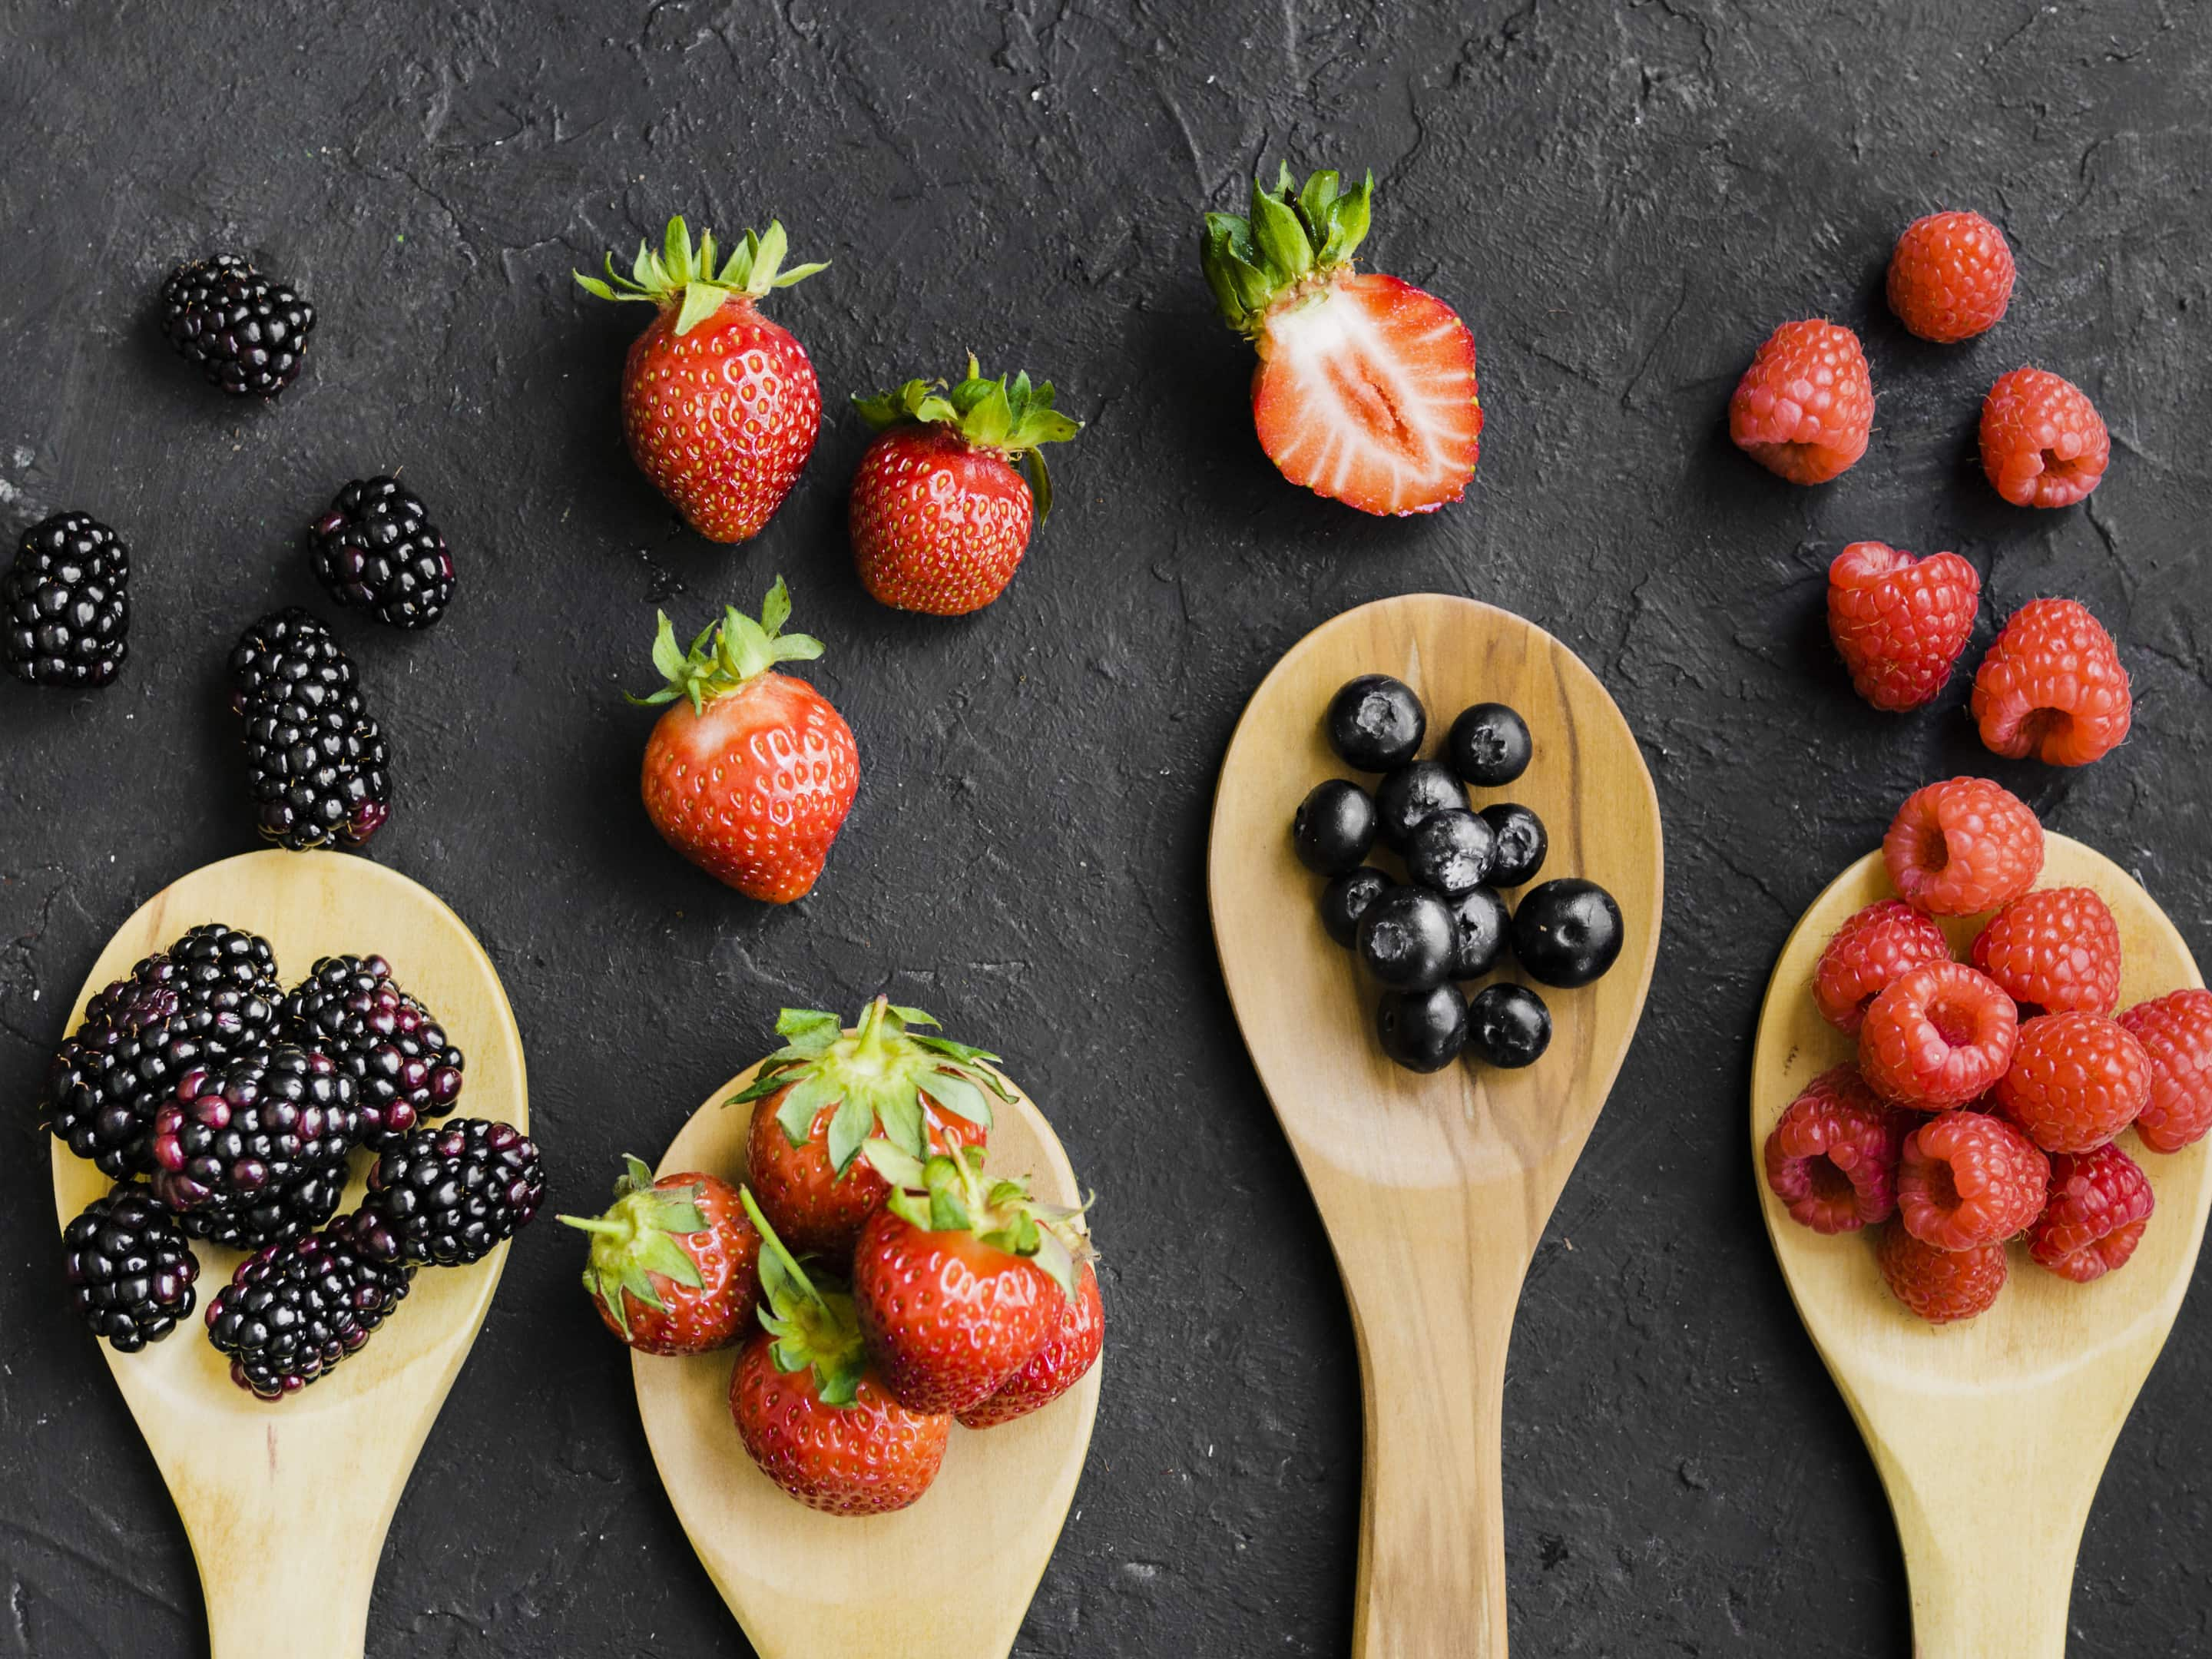 Variety of berries on wooden spoons